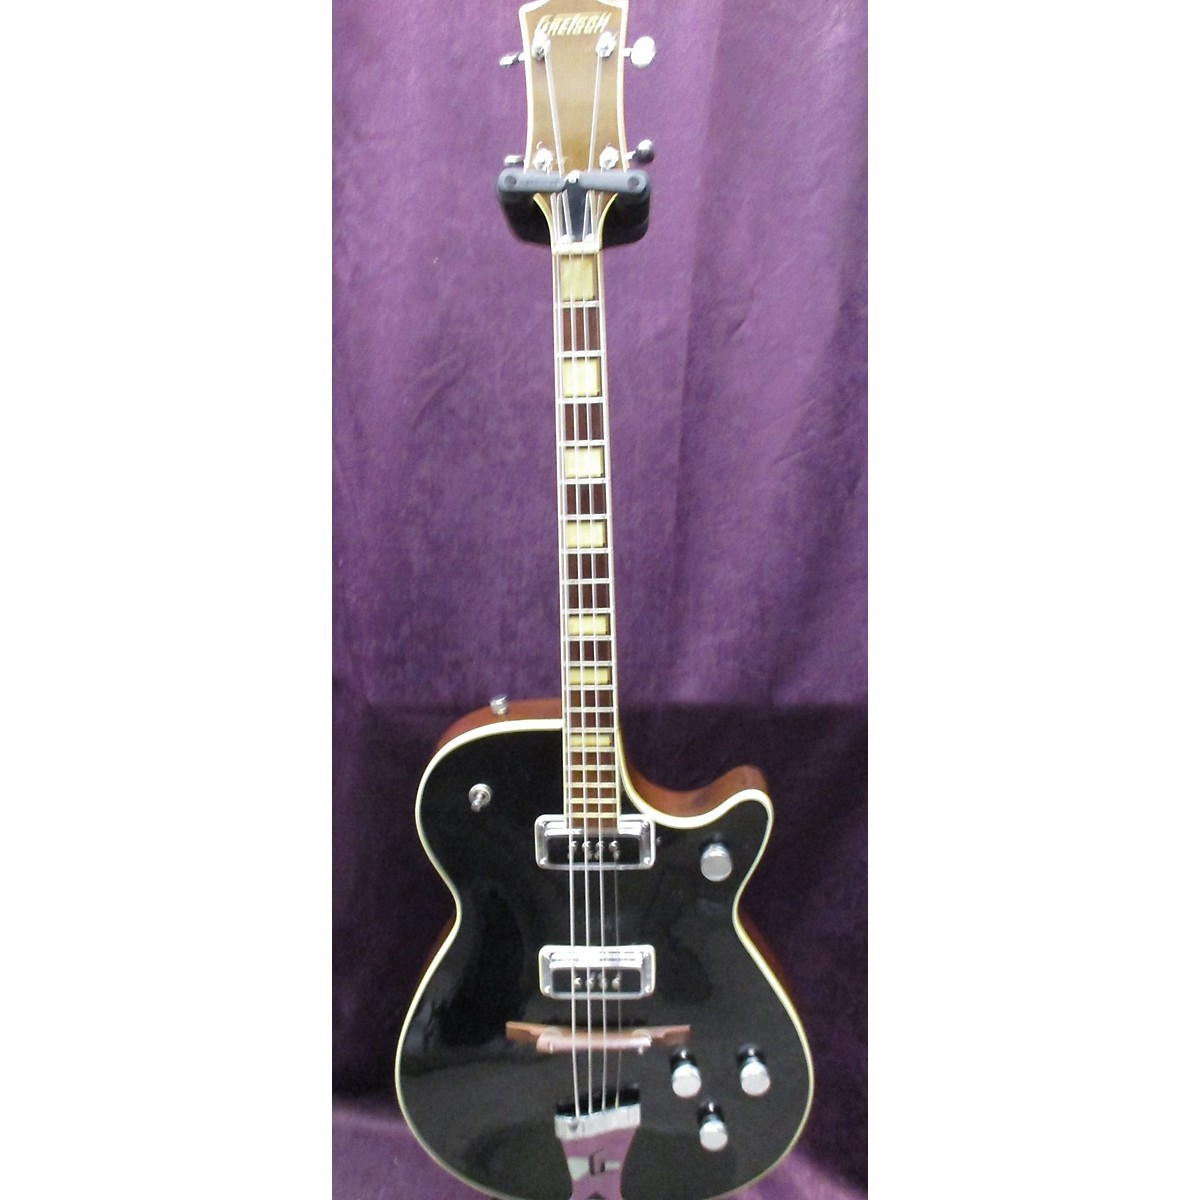 In Store Vintage Vintage 1956 Gretsch DUO JET TENOR Black Solid Body Electric Guitar